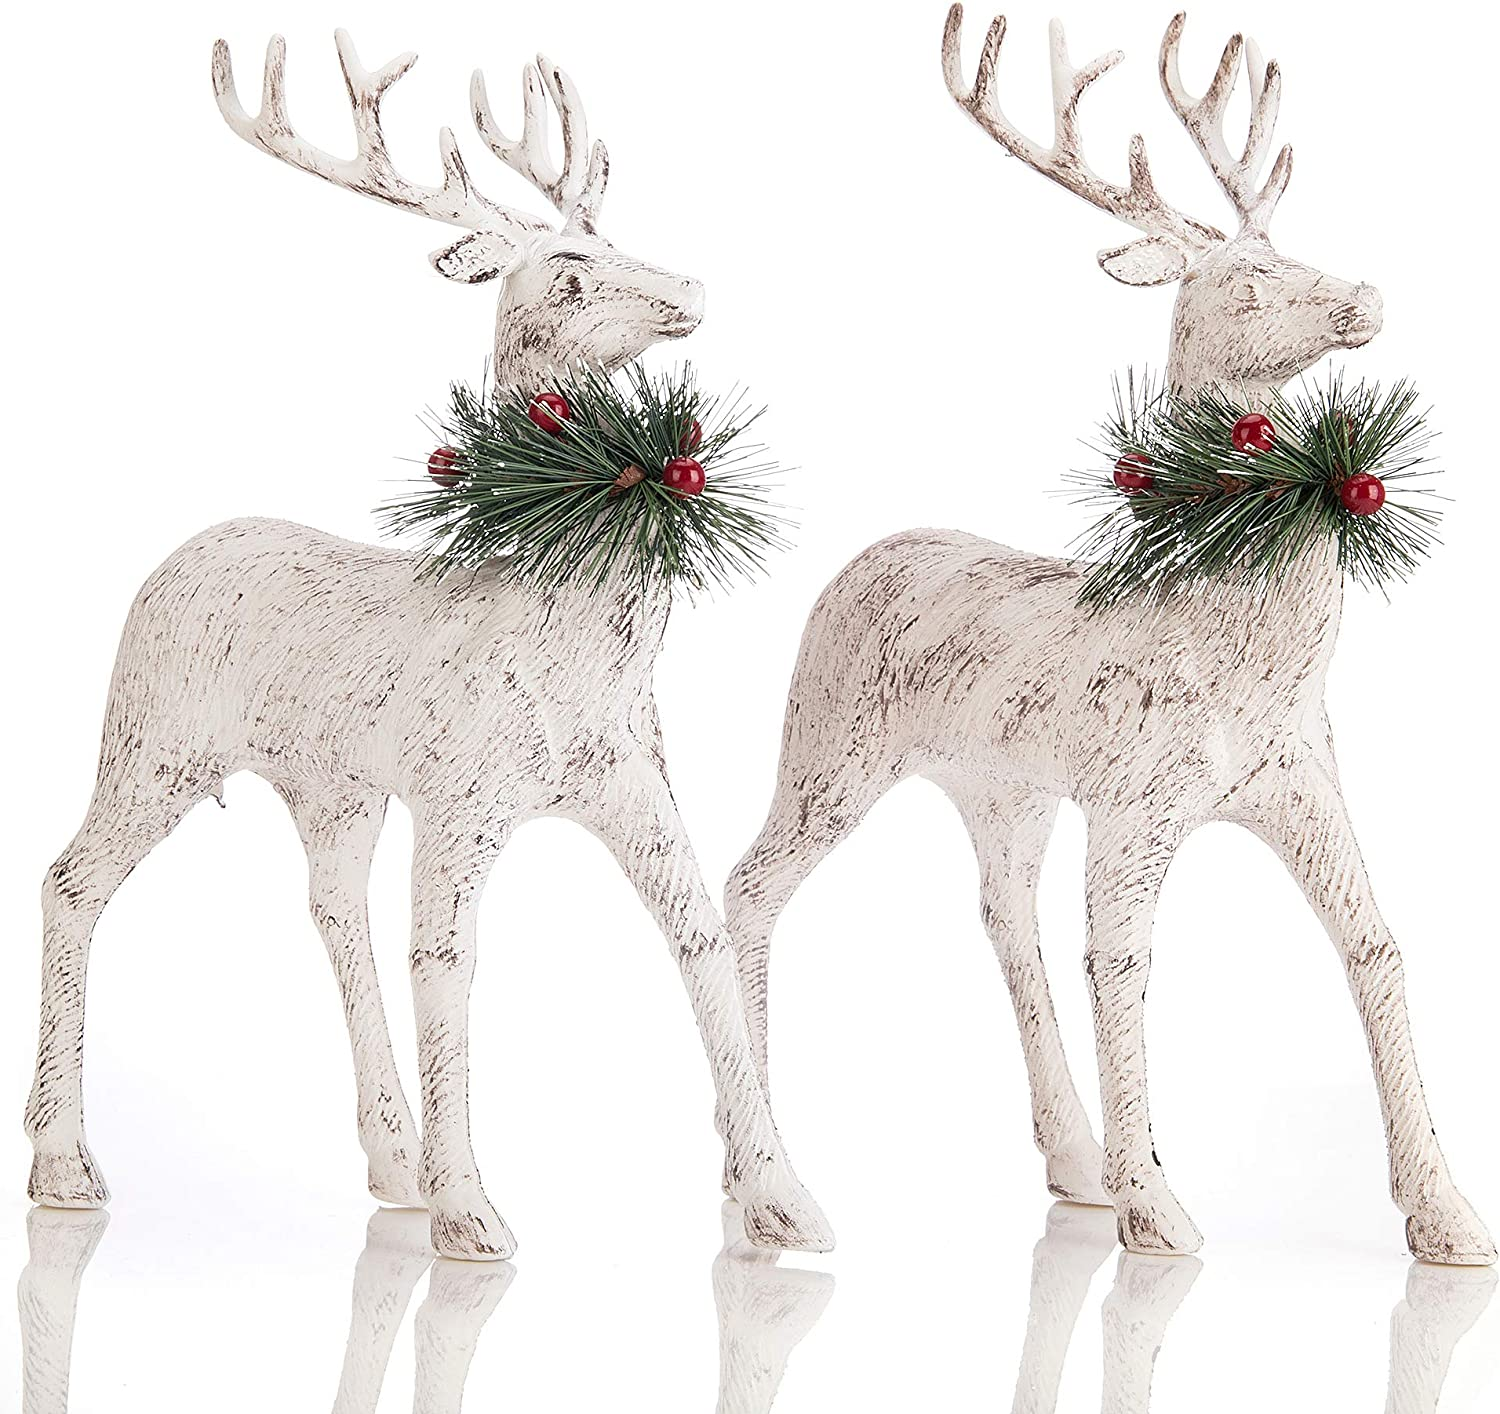 blitzlabs Christmas Reindeer Decoration Vintage Stag Deer Ornament Figurines, Freestanding Indoor Decorative for Living Room, Tabletop, Kitchen ,Mantle, Shelf ,Desk Winter Homely Decor,Set of 2